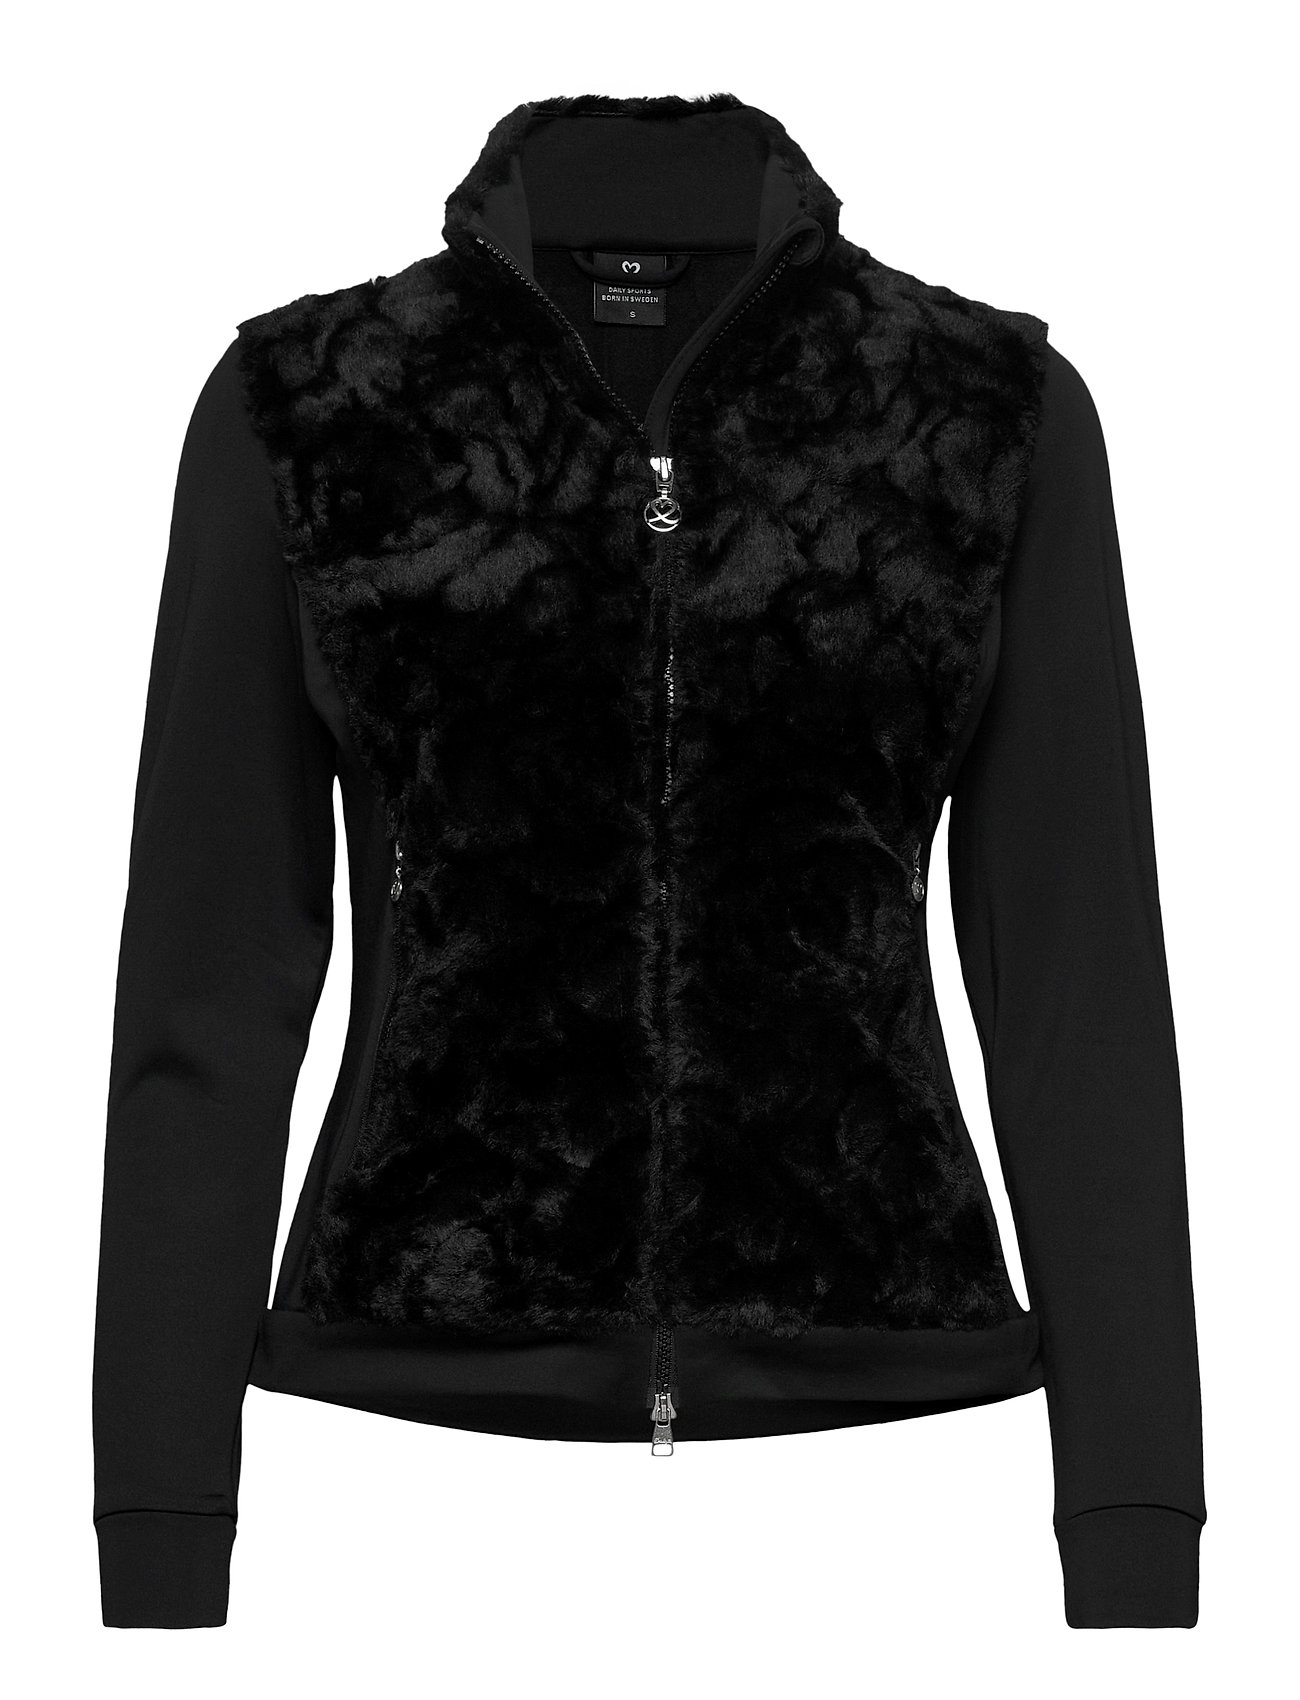 Image of Frances Jacket Outerwear Sport Jackets Sort Daily Sports (3448365453)